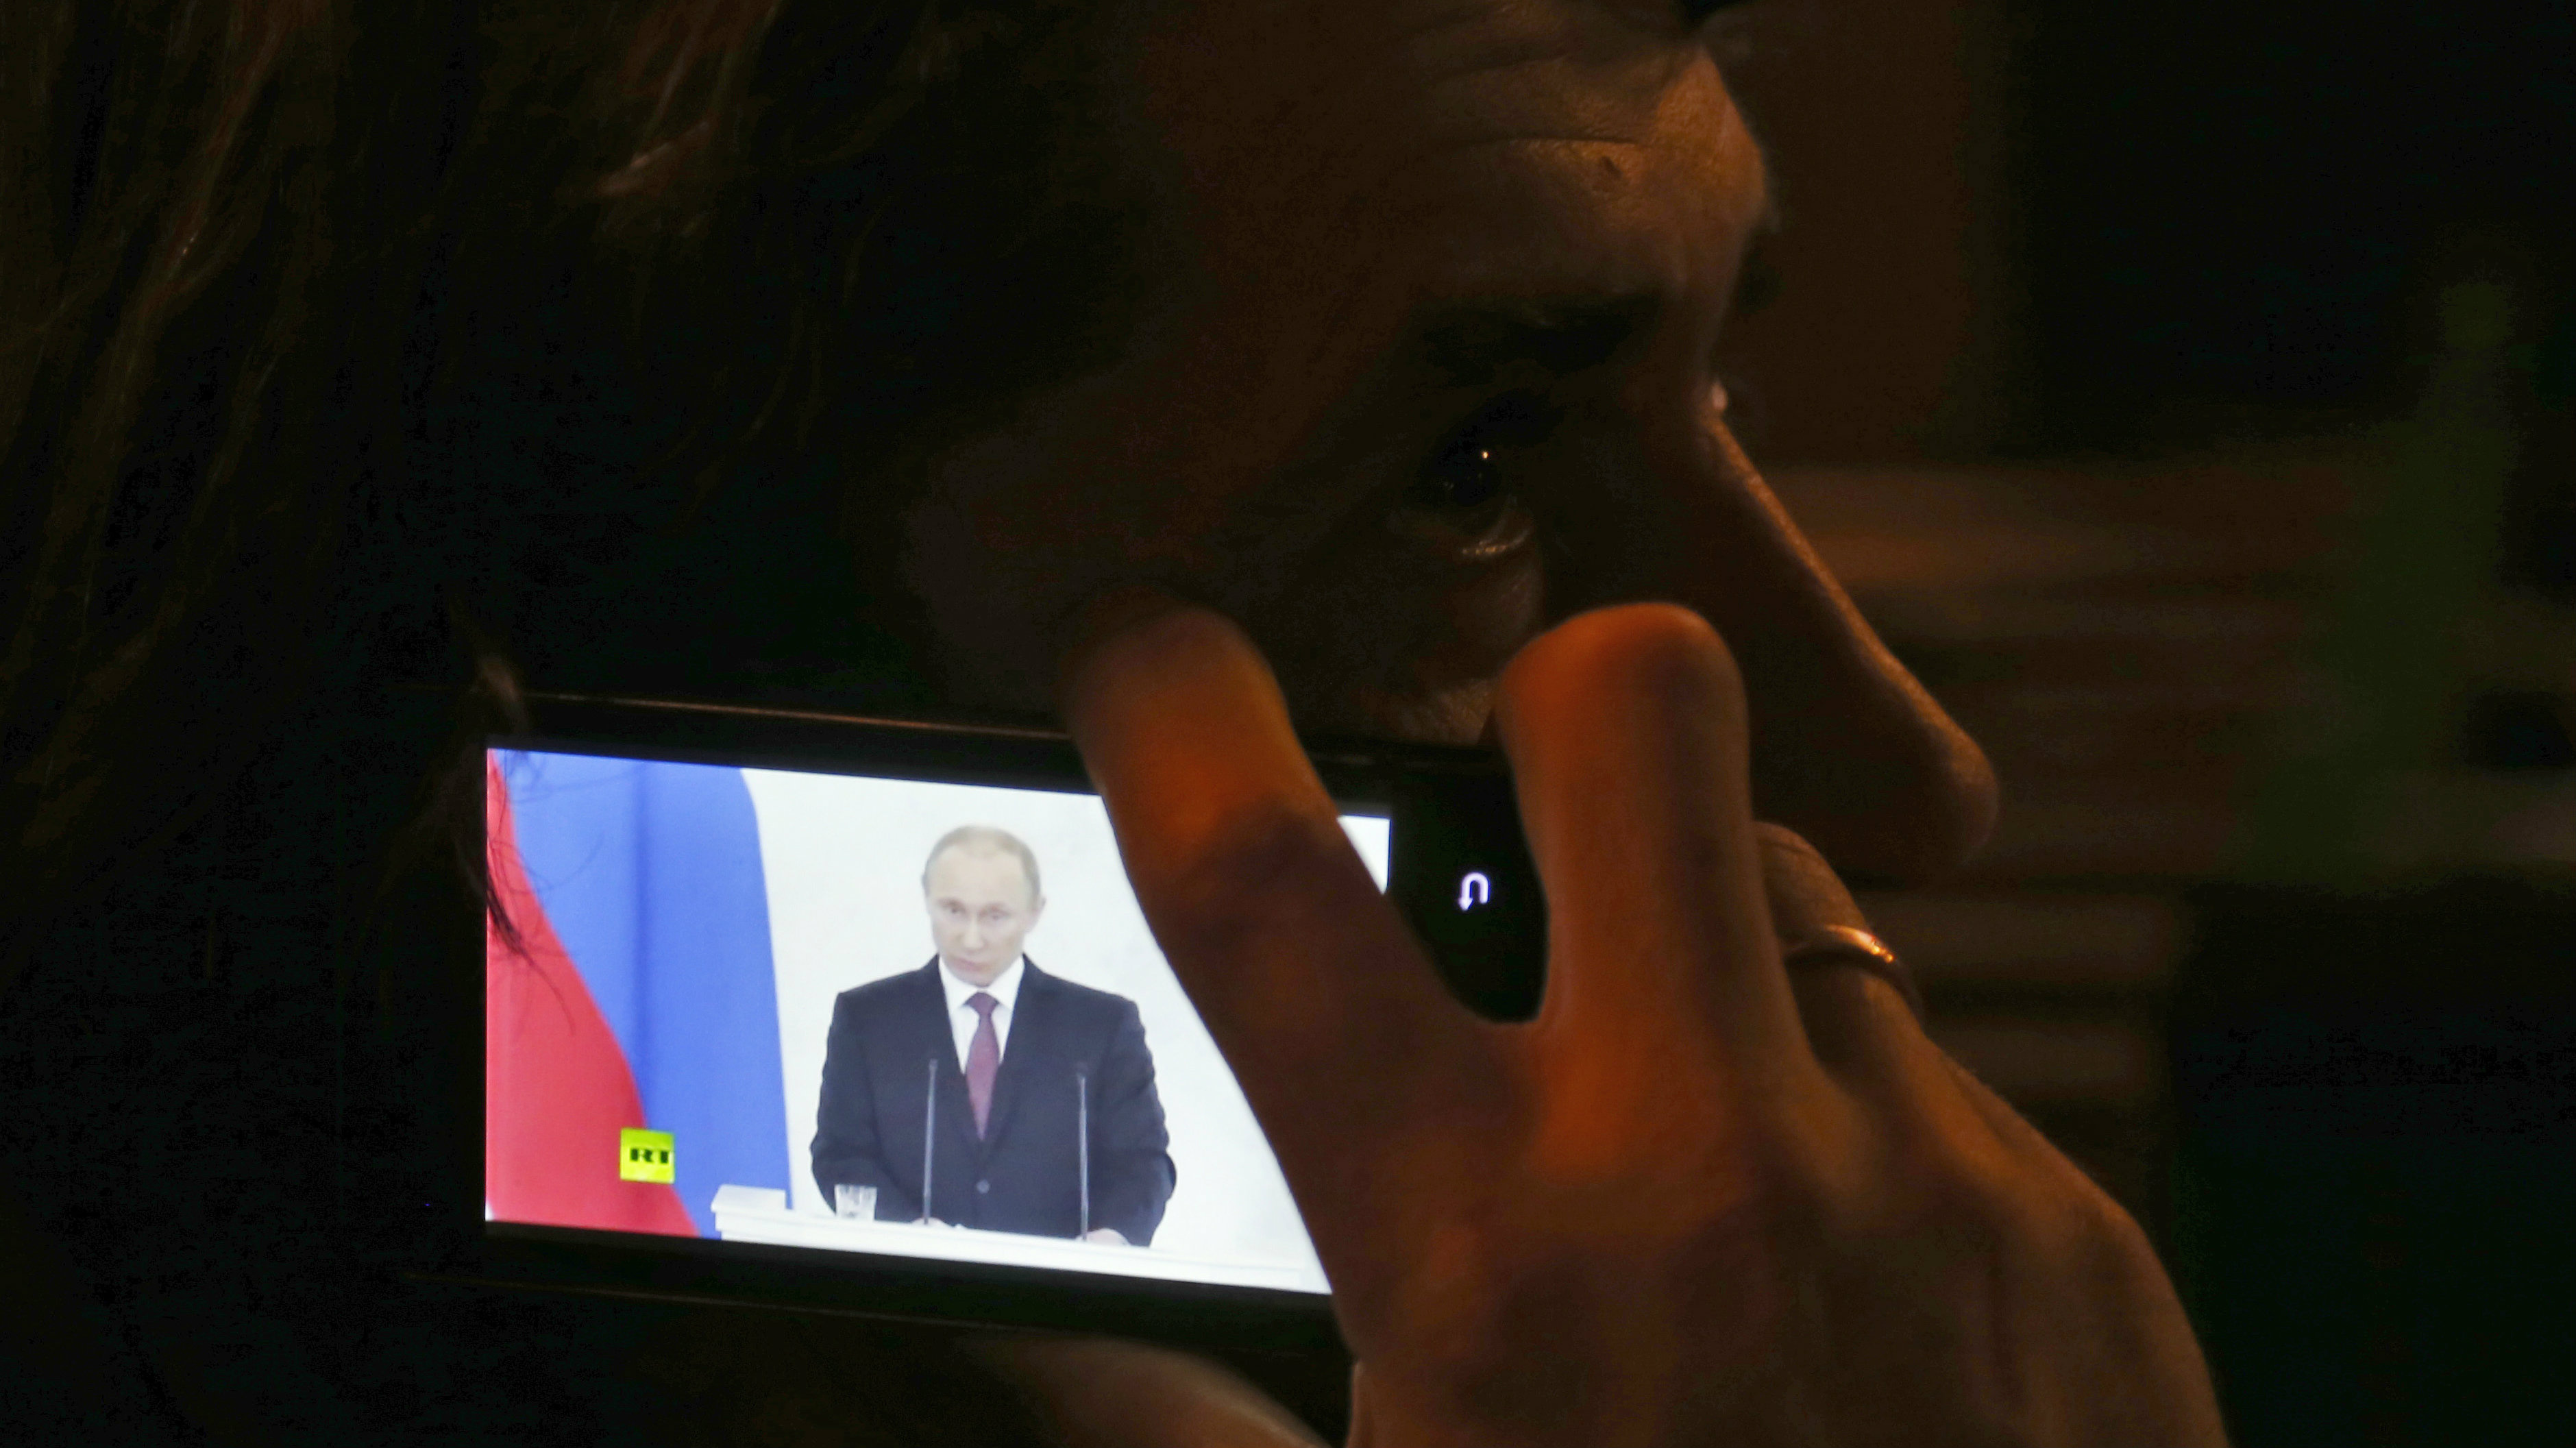 """A patron listens to Russian President Vladimir Putin deliver a statement with a mobile phone in a bar in Donetsk, Ukraine, Tuesday, March 18, 2014. Putin on Tuesday fiercely defended Russia's move to annex Crimea saying Crimea's vote on Sunday to join Russia was in line with """"democratic norms and international law."""""""